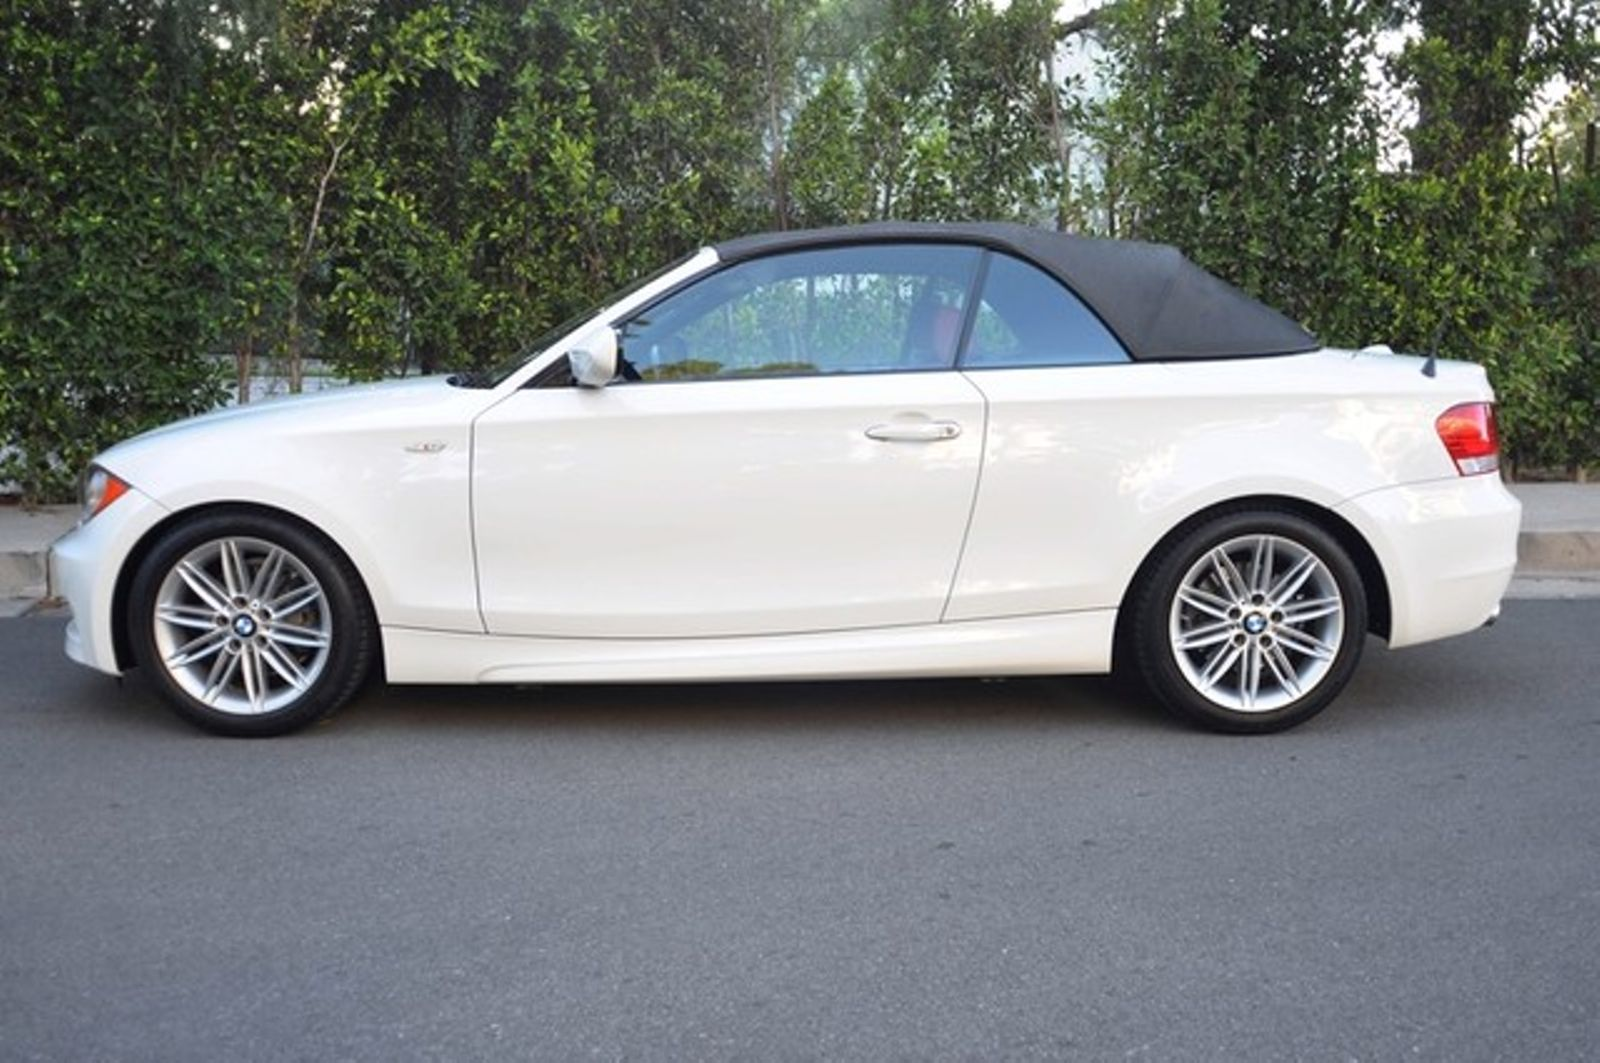 BMW I Convertible As New Condition California Car City - 2011 bmw 128i convertible